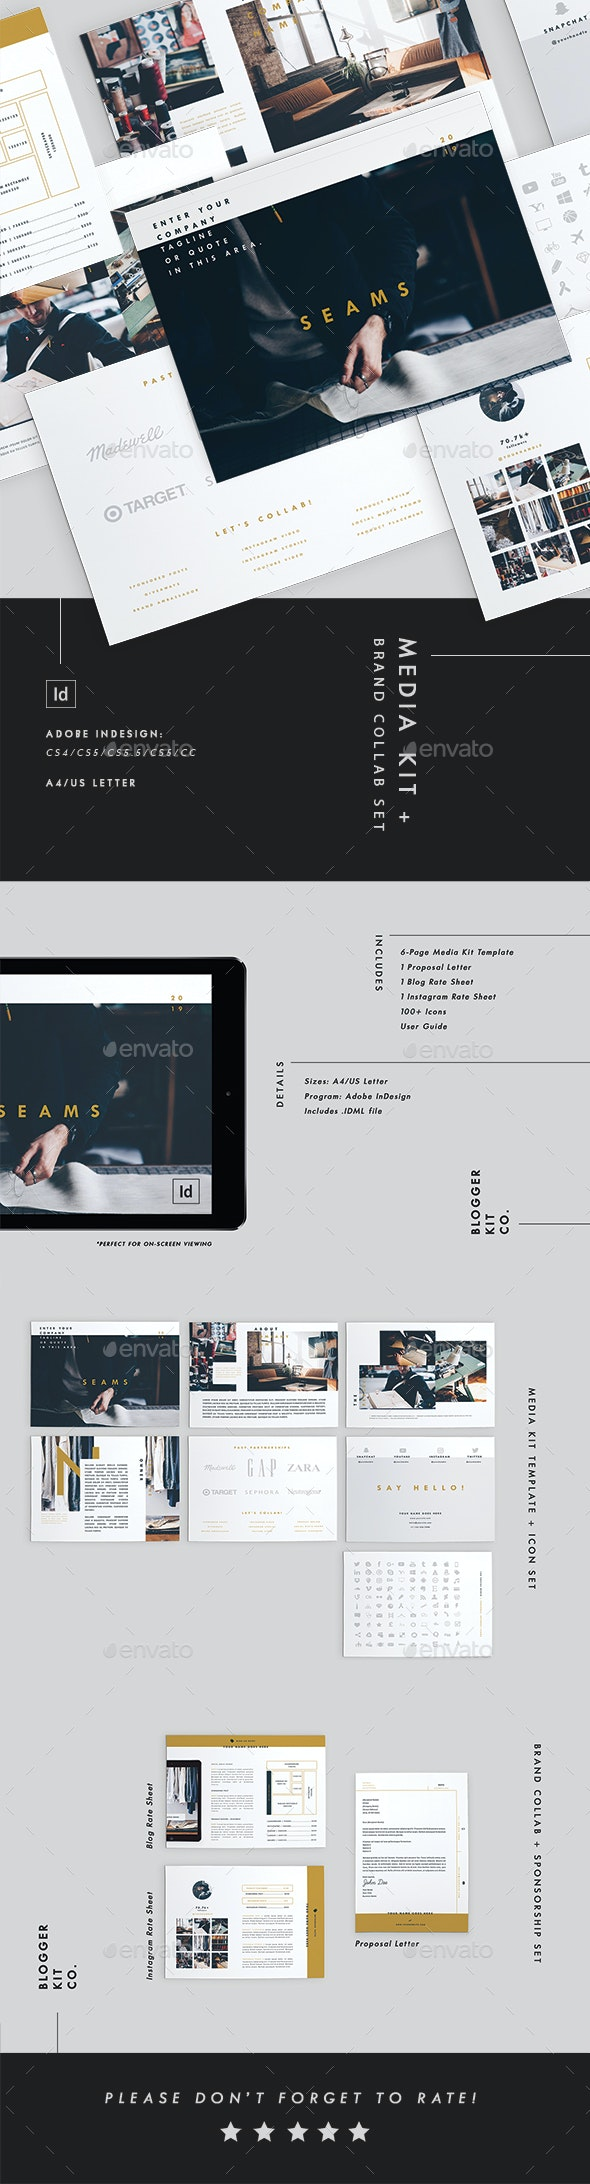 Media Kit Template + Brand Collab Set - Resumes Stationery